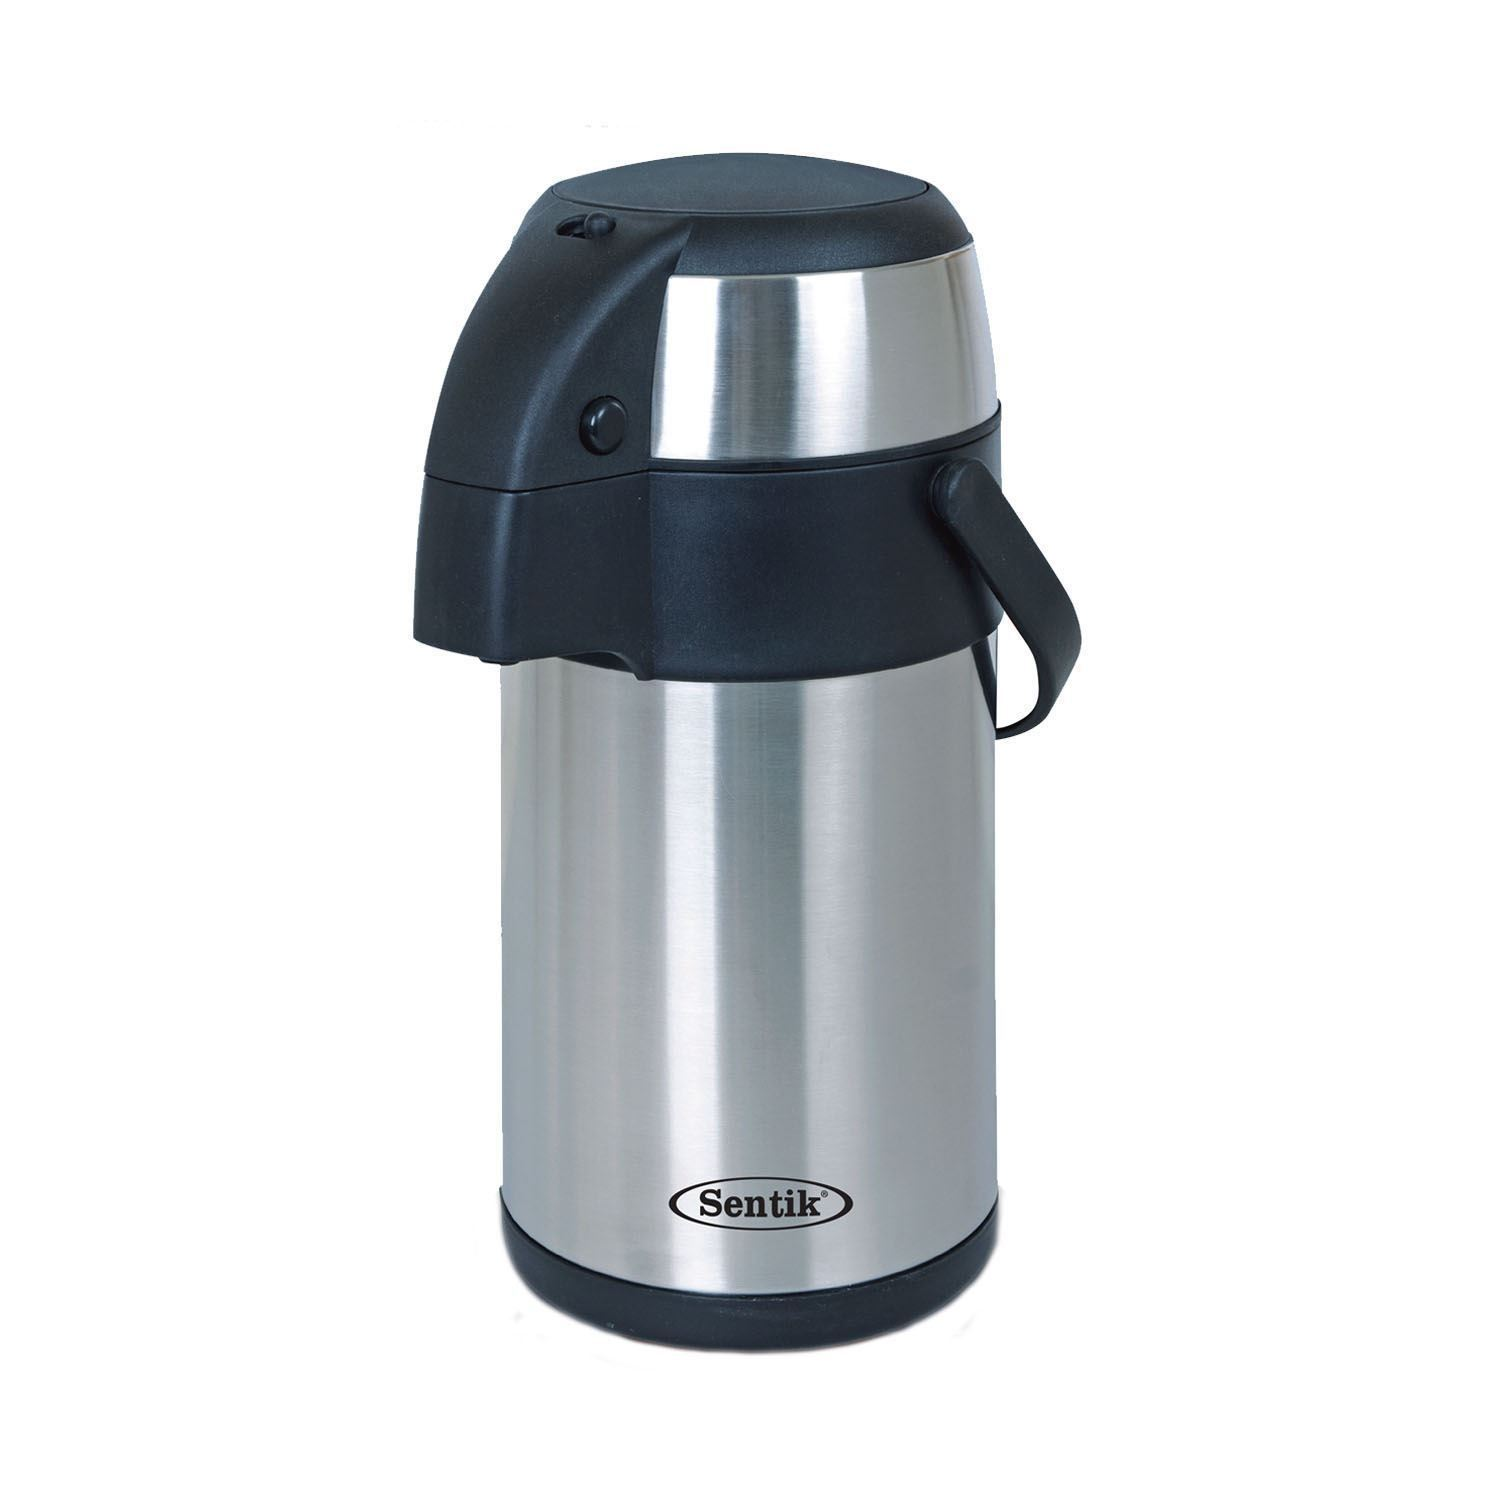 3L/5L Litre Stainless Steel Airpot Vacuum Flask Thermos ...